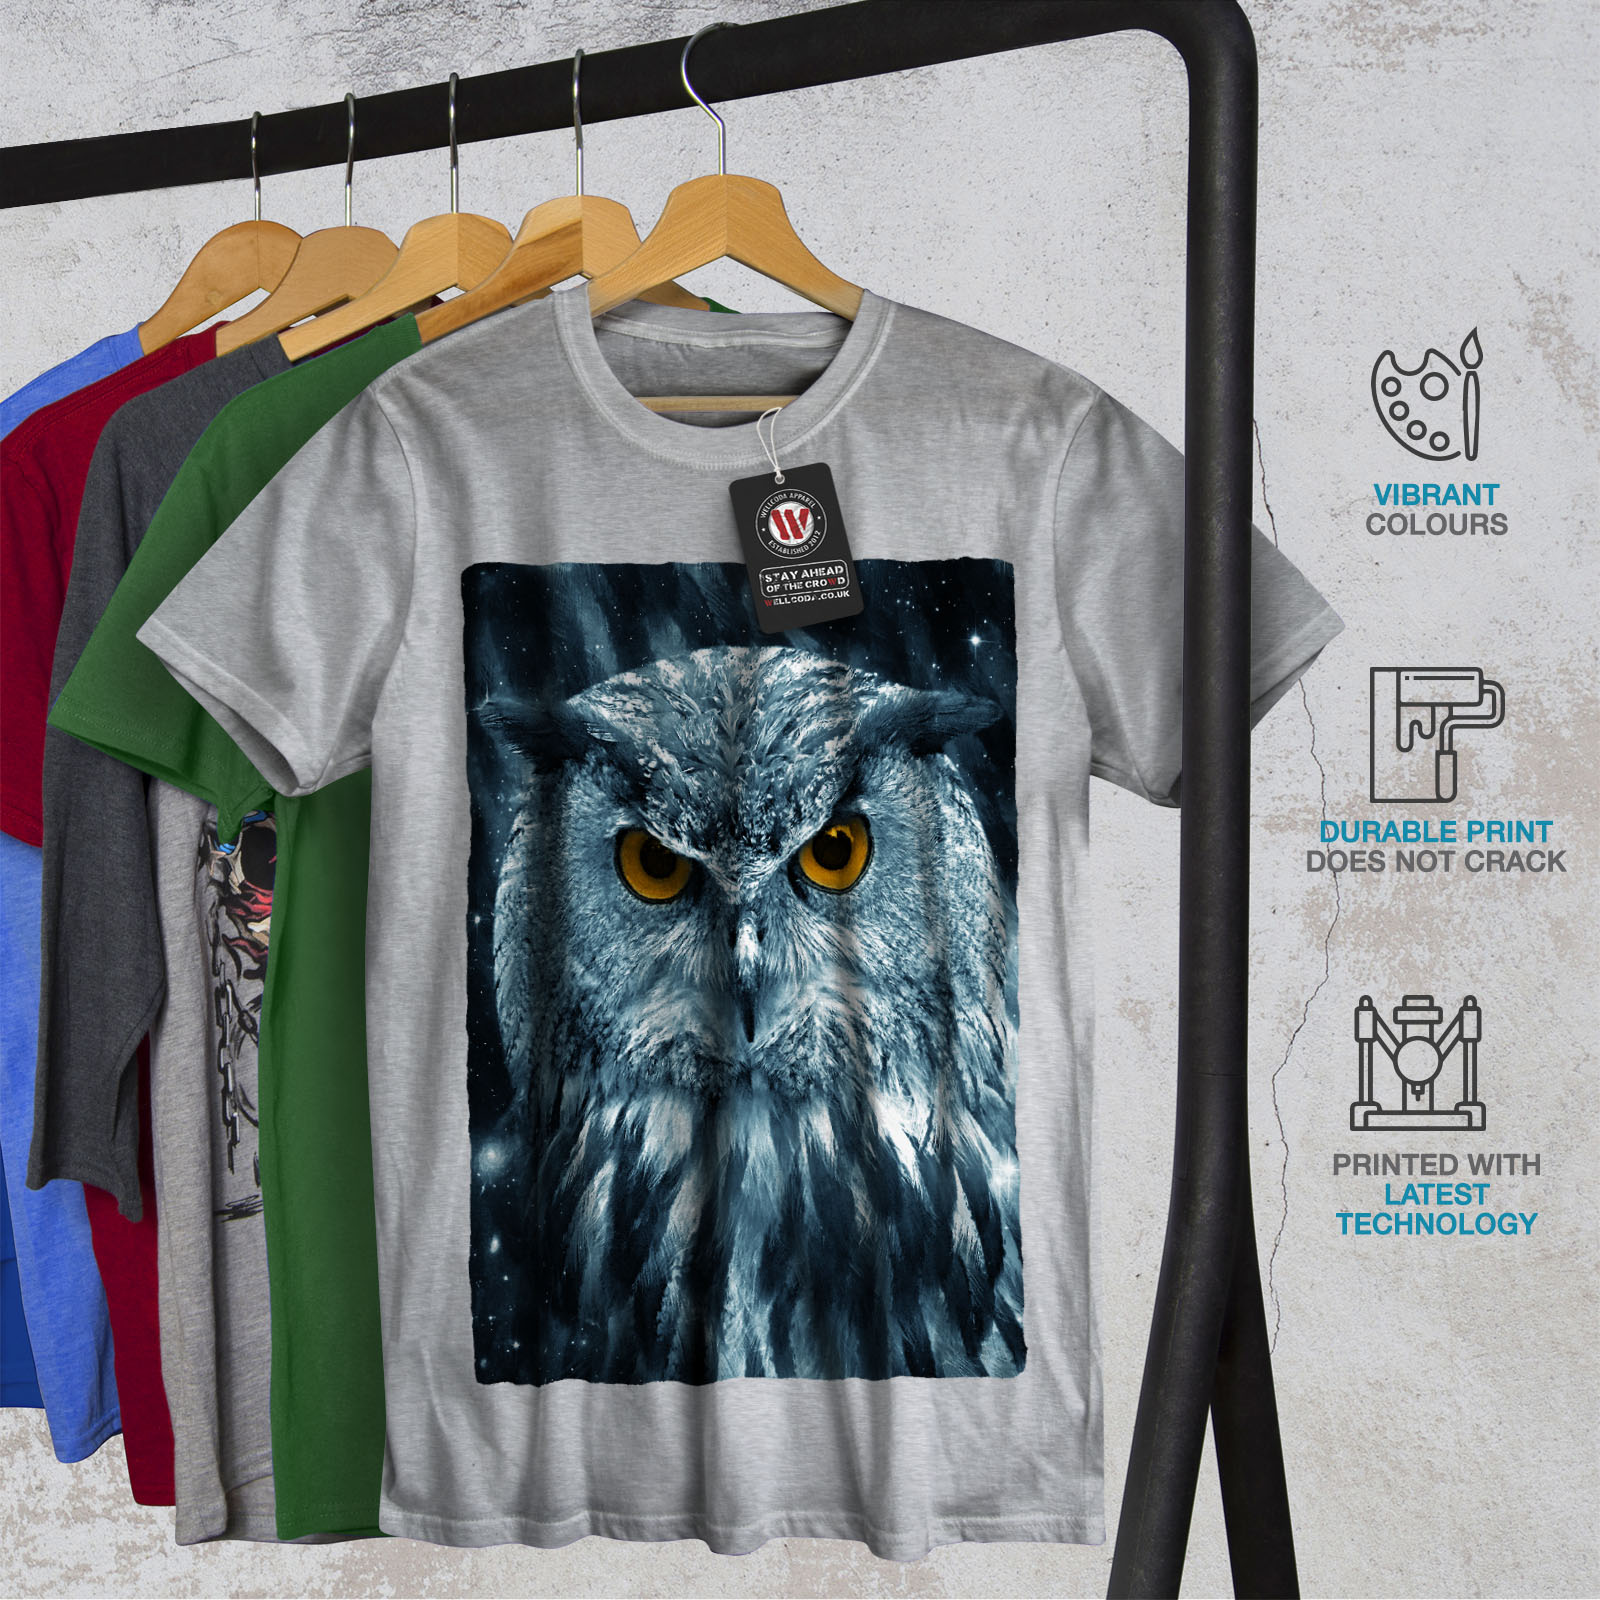 miniature 18 - Wellcoda-Wild-Looking-Owl-Mens-T-shirt-Mother-Graphic-Design-Printed-Tee